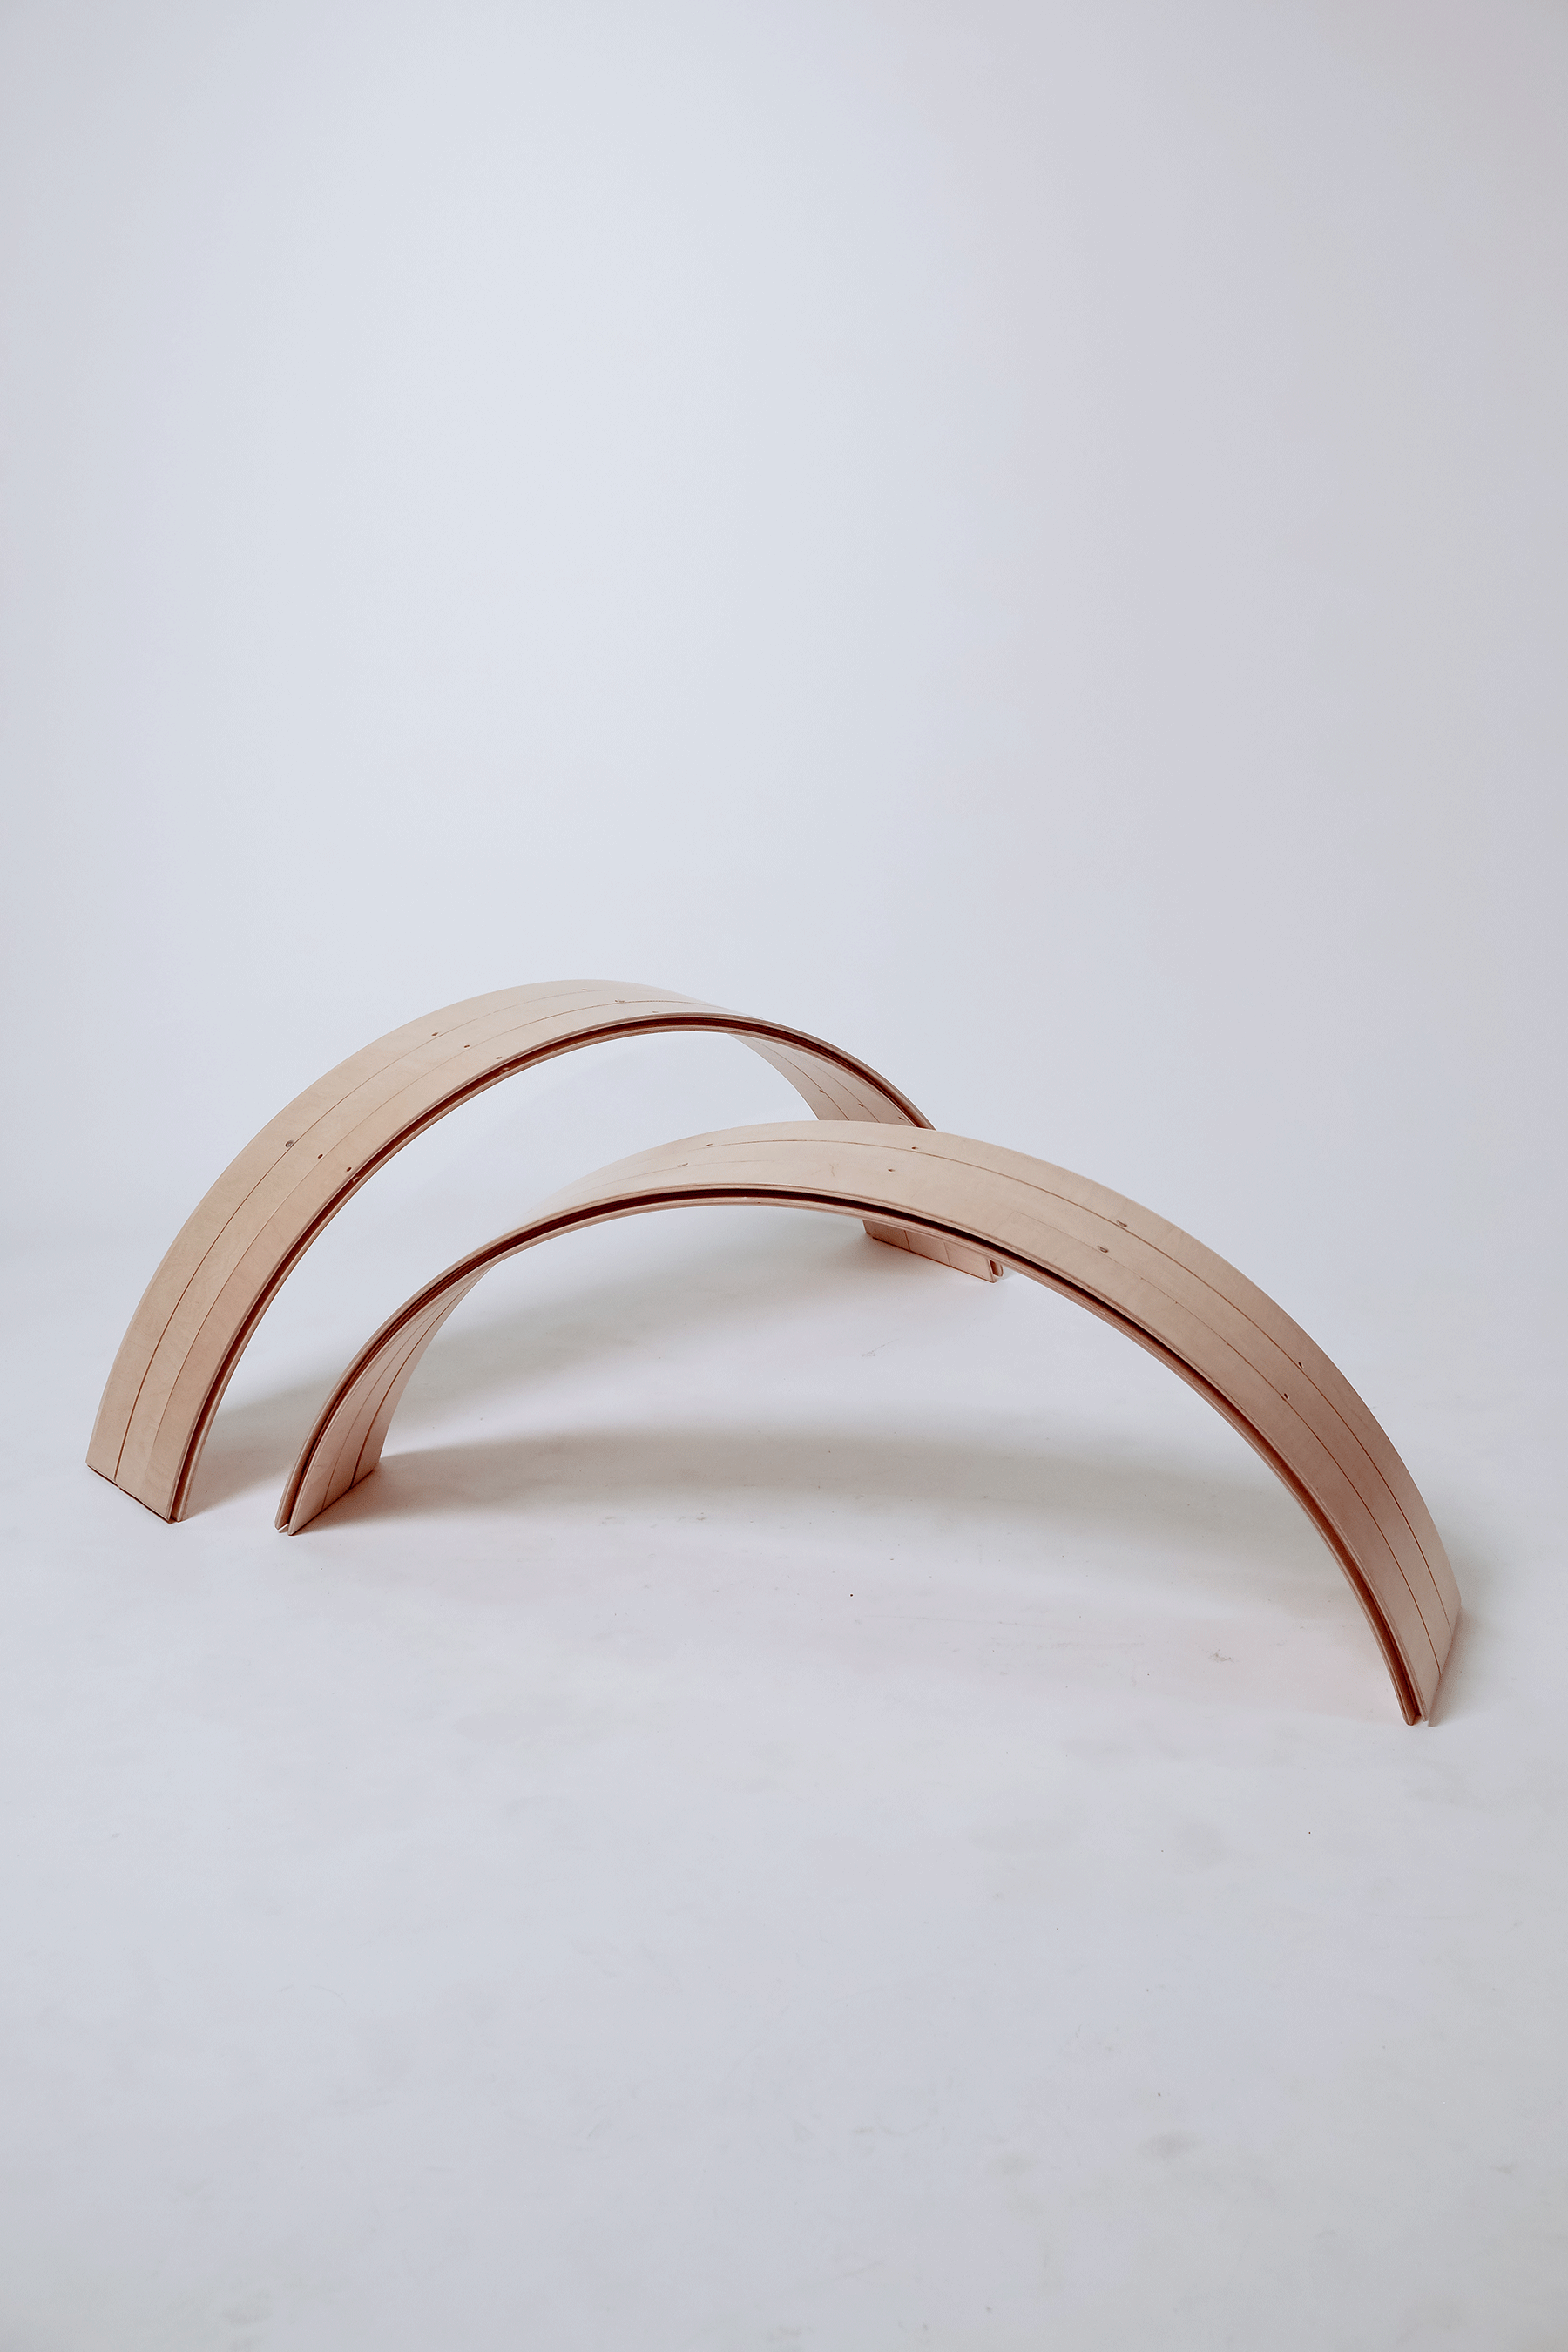 woodworking-12_1800.png